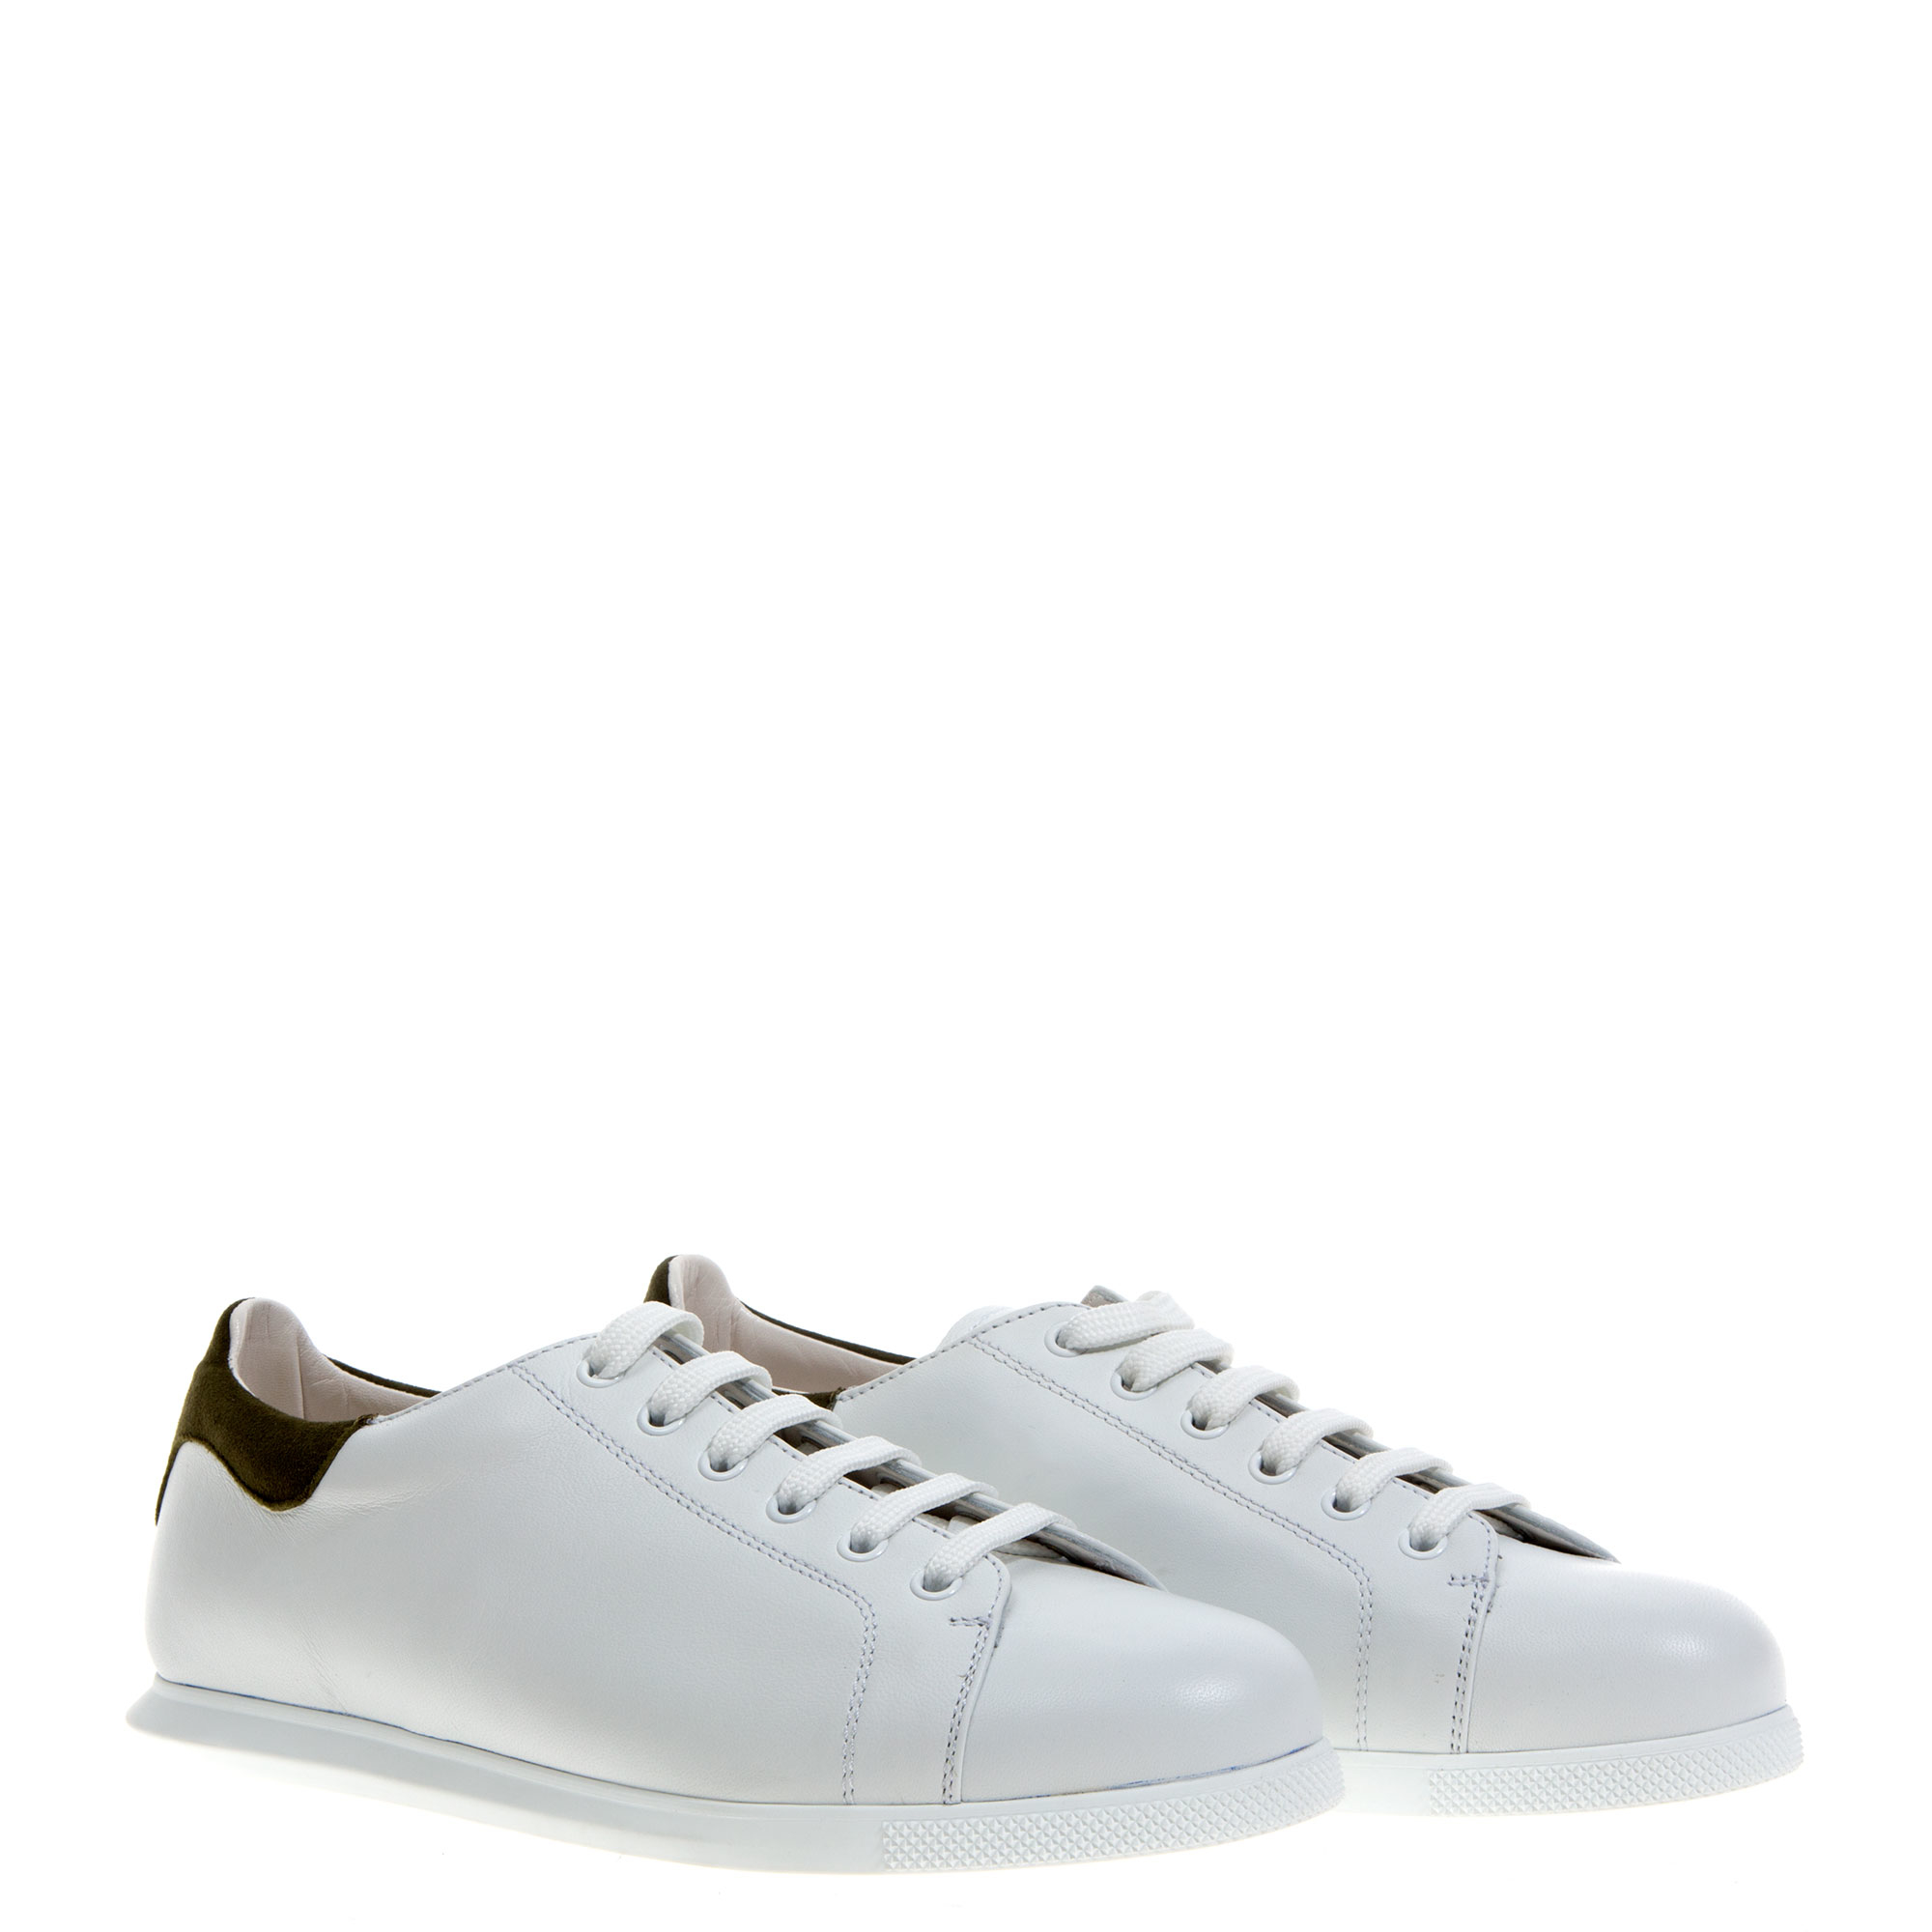 alexander mcqueen sneaker in white lyst. Black Bedroom Furniture Sets. Home Design Ideas